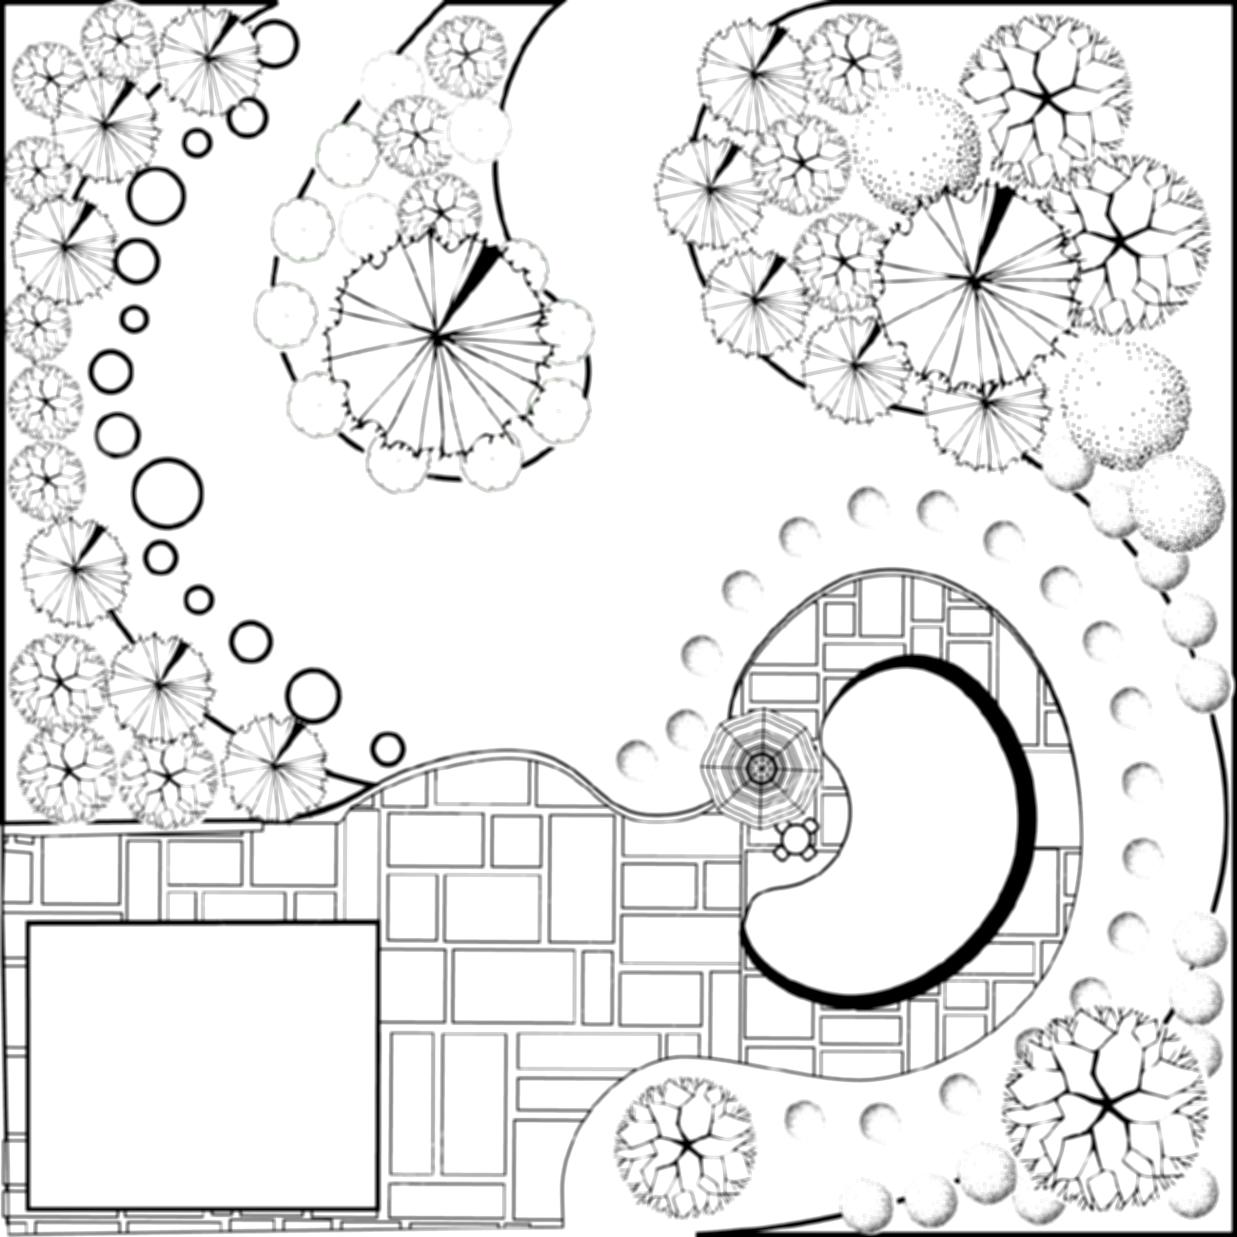 Free Landscaping Design Cliparts Download Free Clip Art